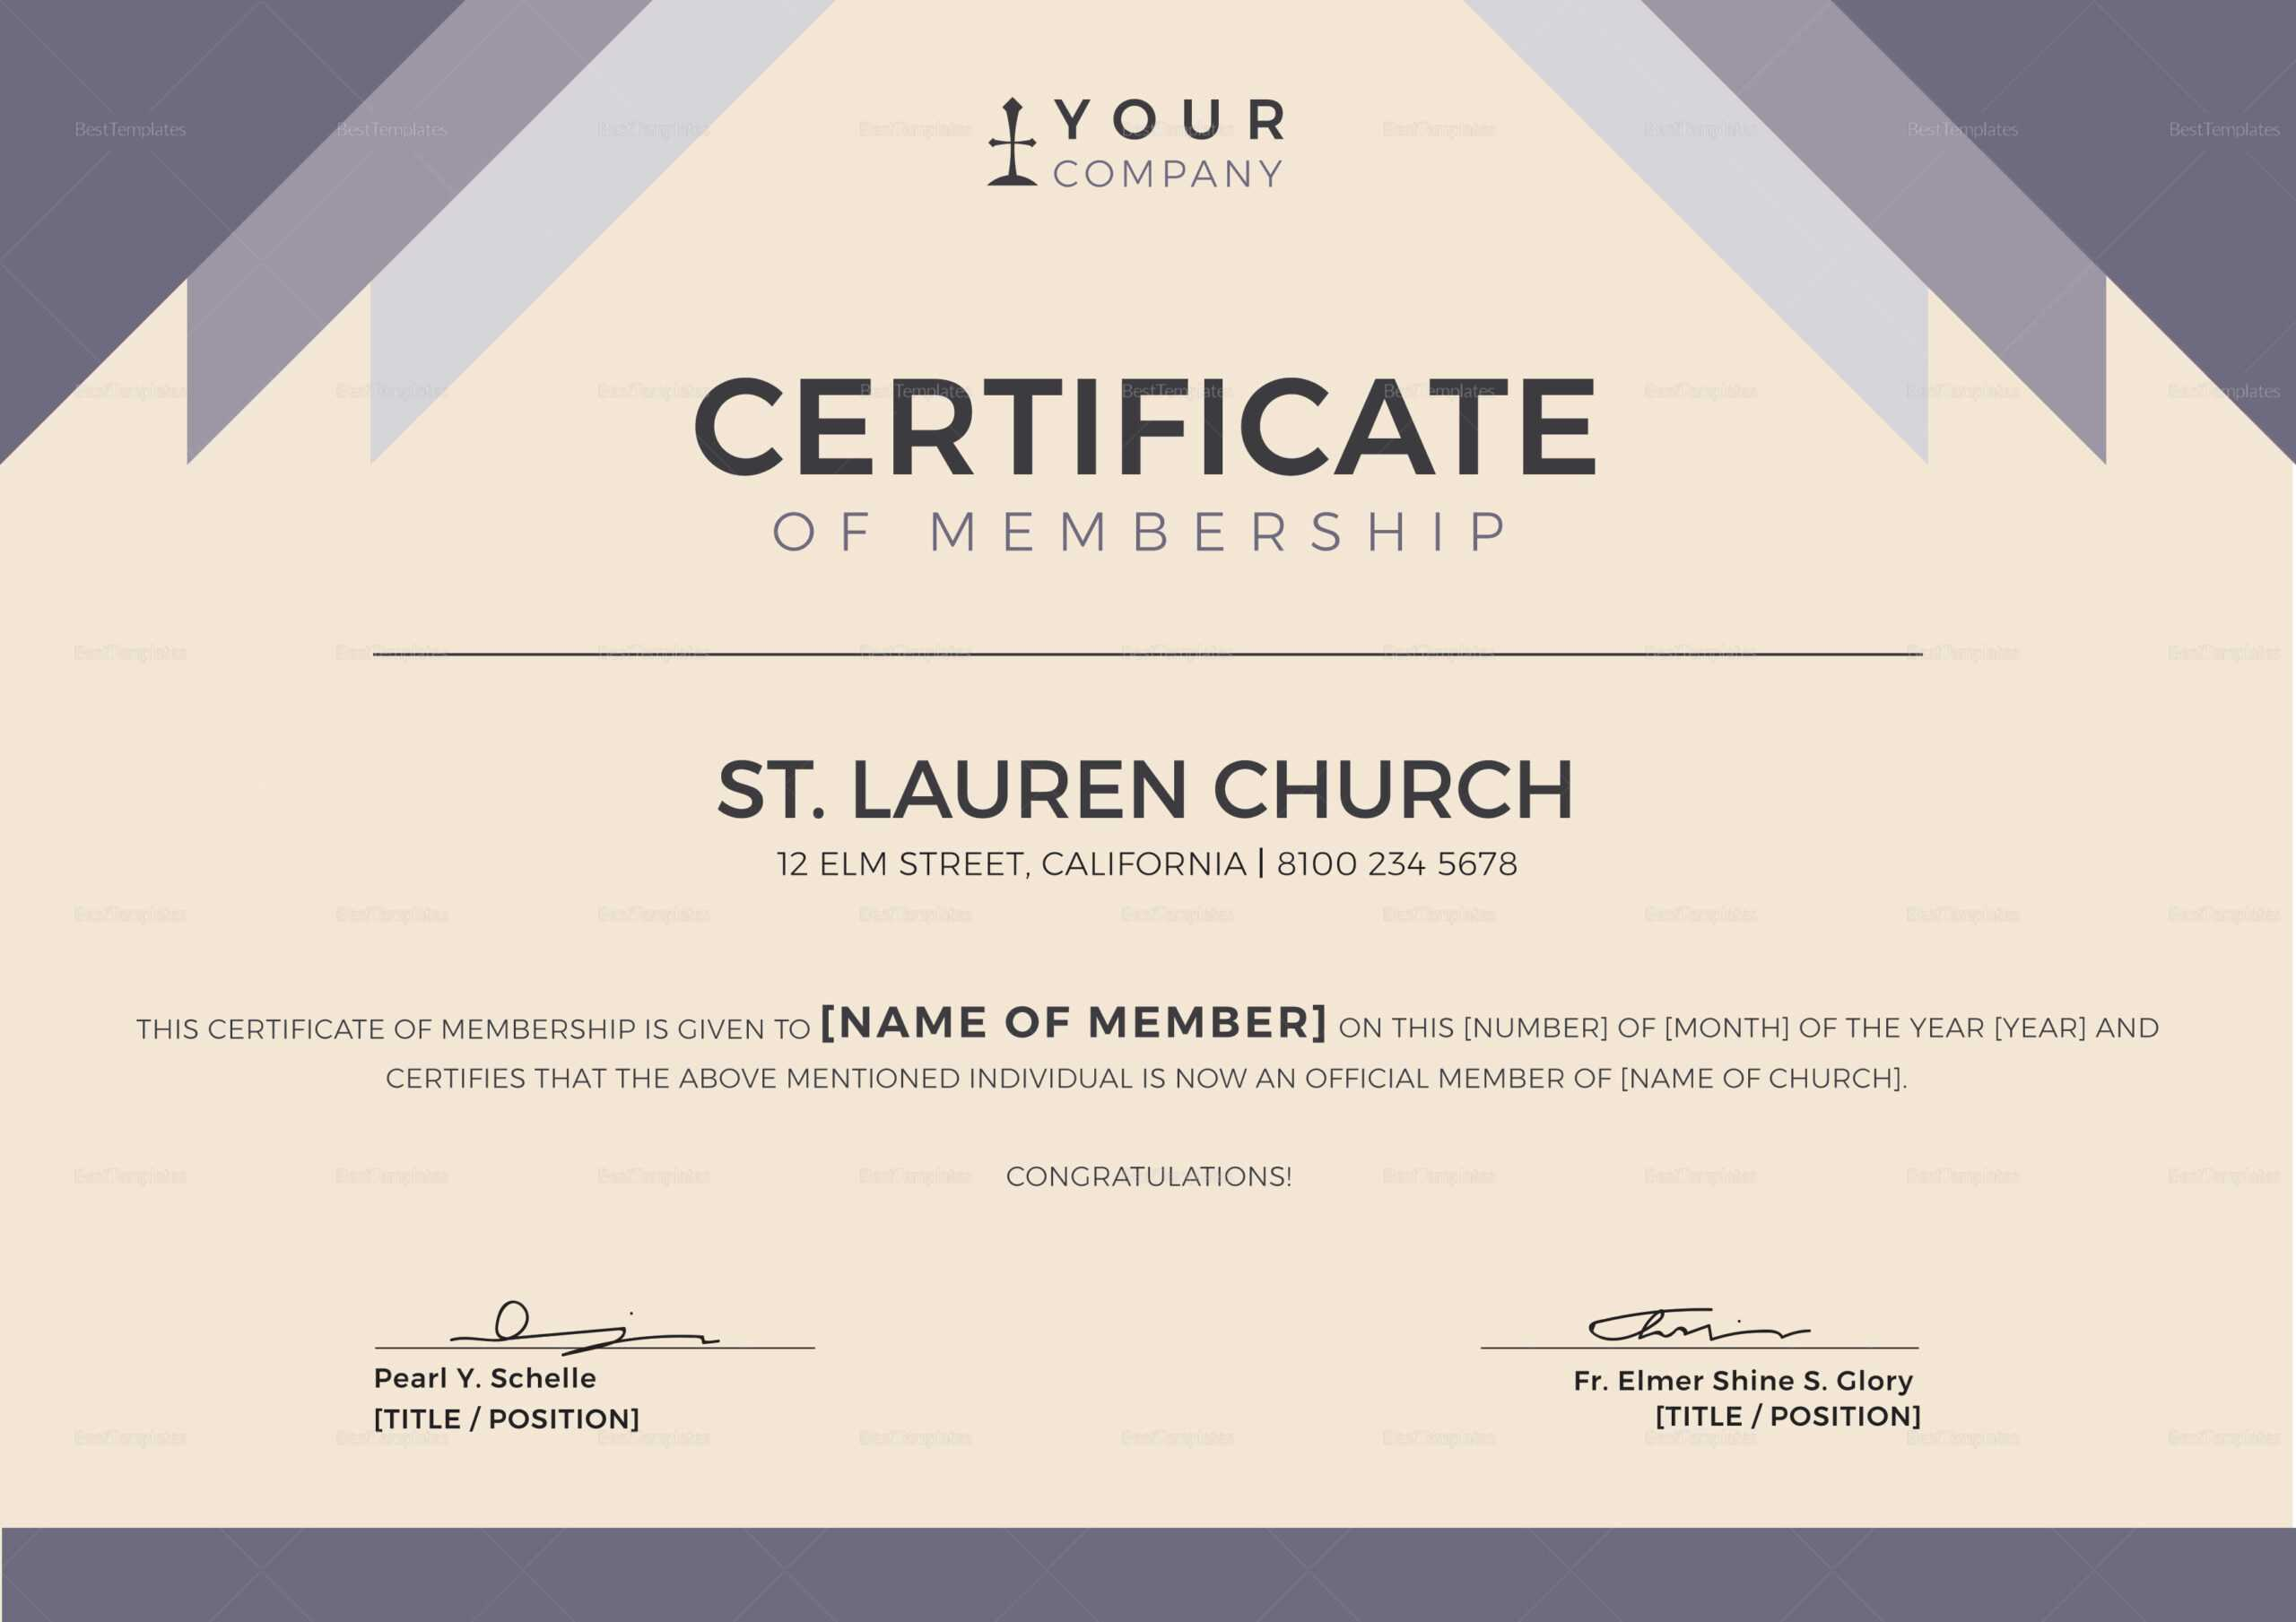 Church Certificates Templates - Calep.midnightpig.co With Regard To New Member Certificate Template